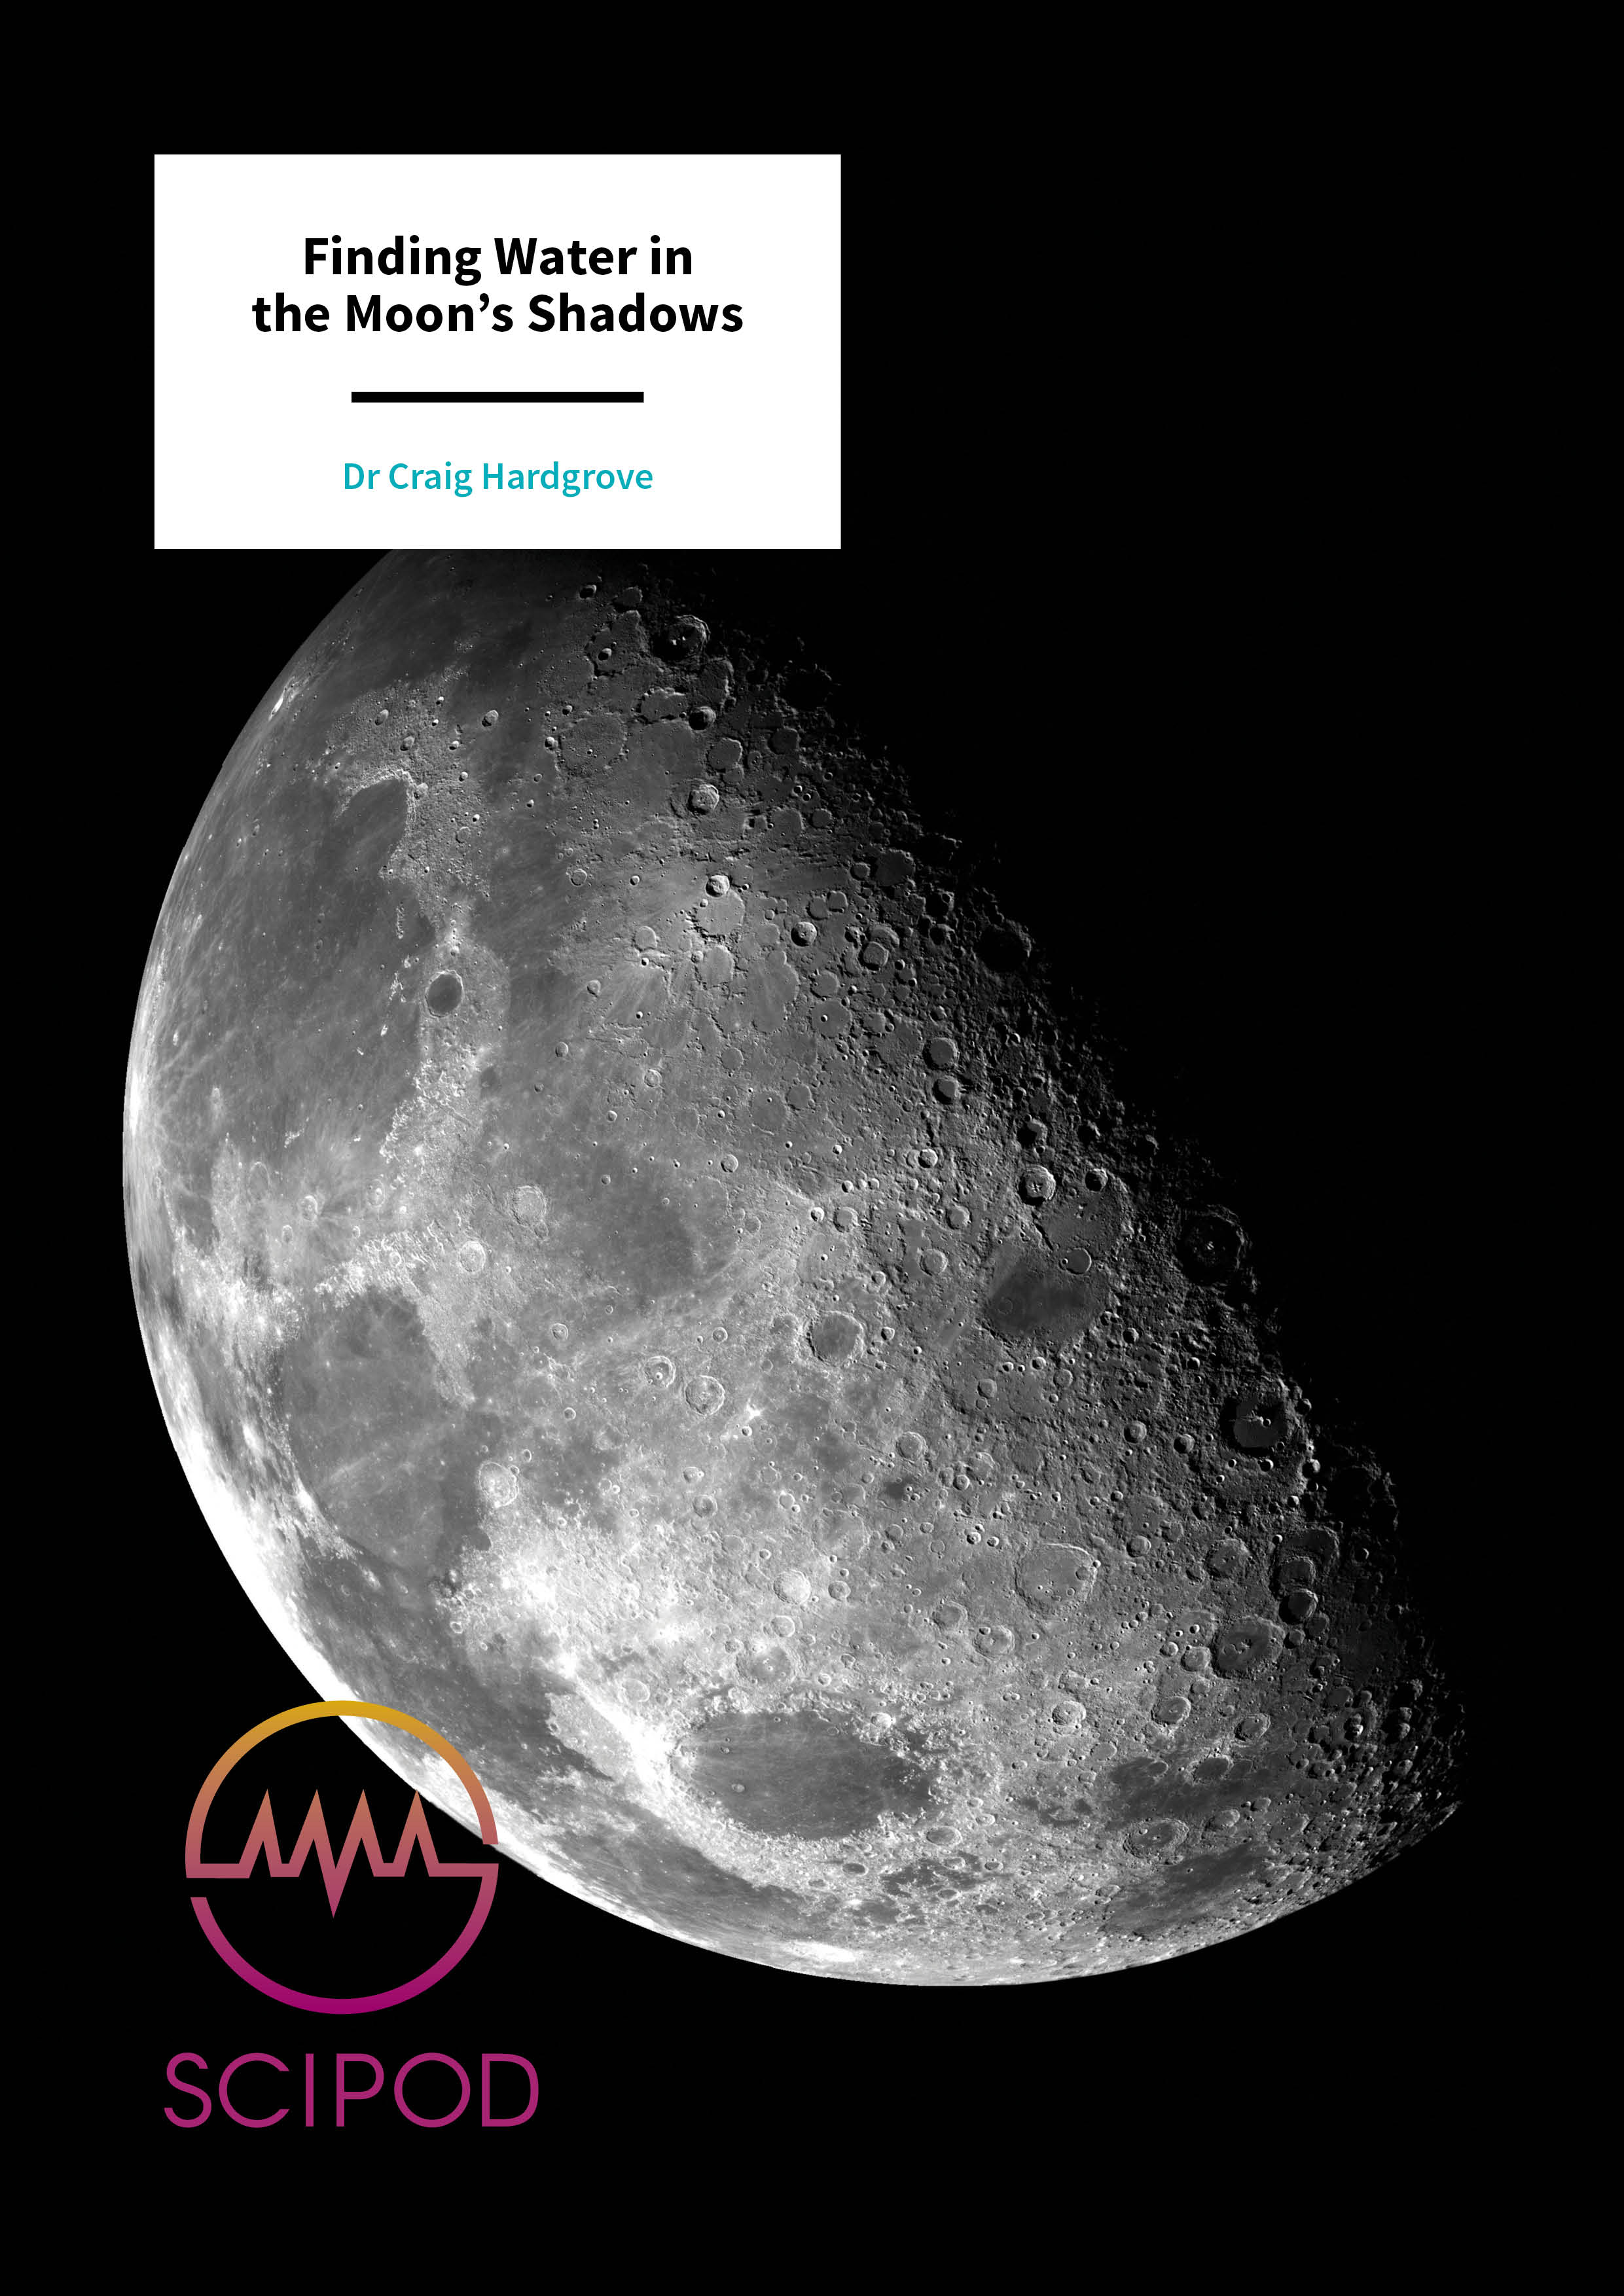 Finding Water in the Moon's Shadows – Dr Craig Hardgrove, Arizona State University